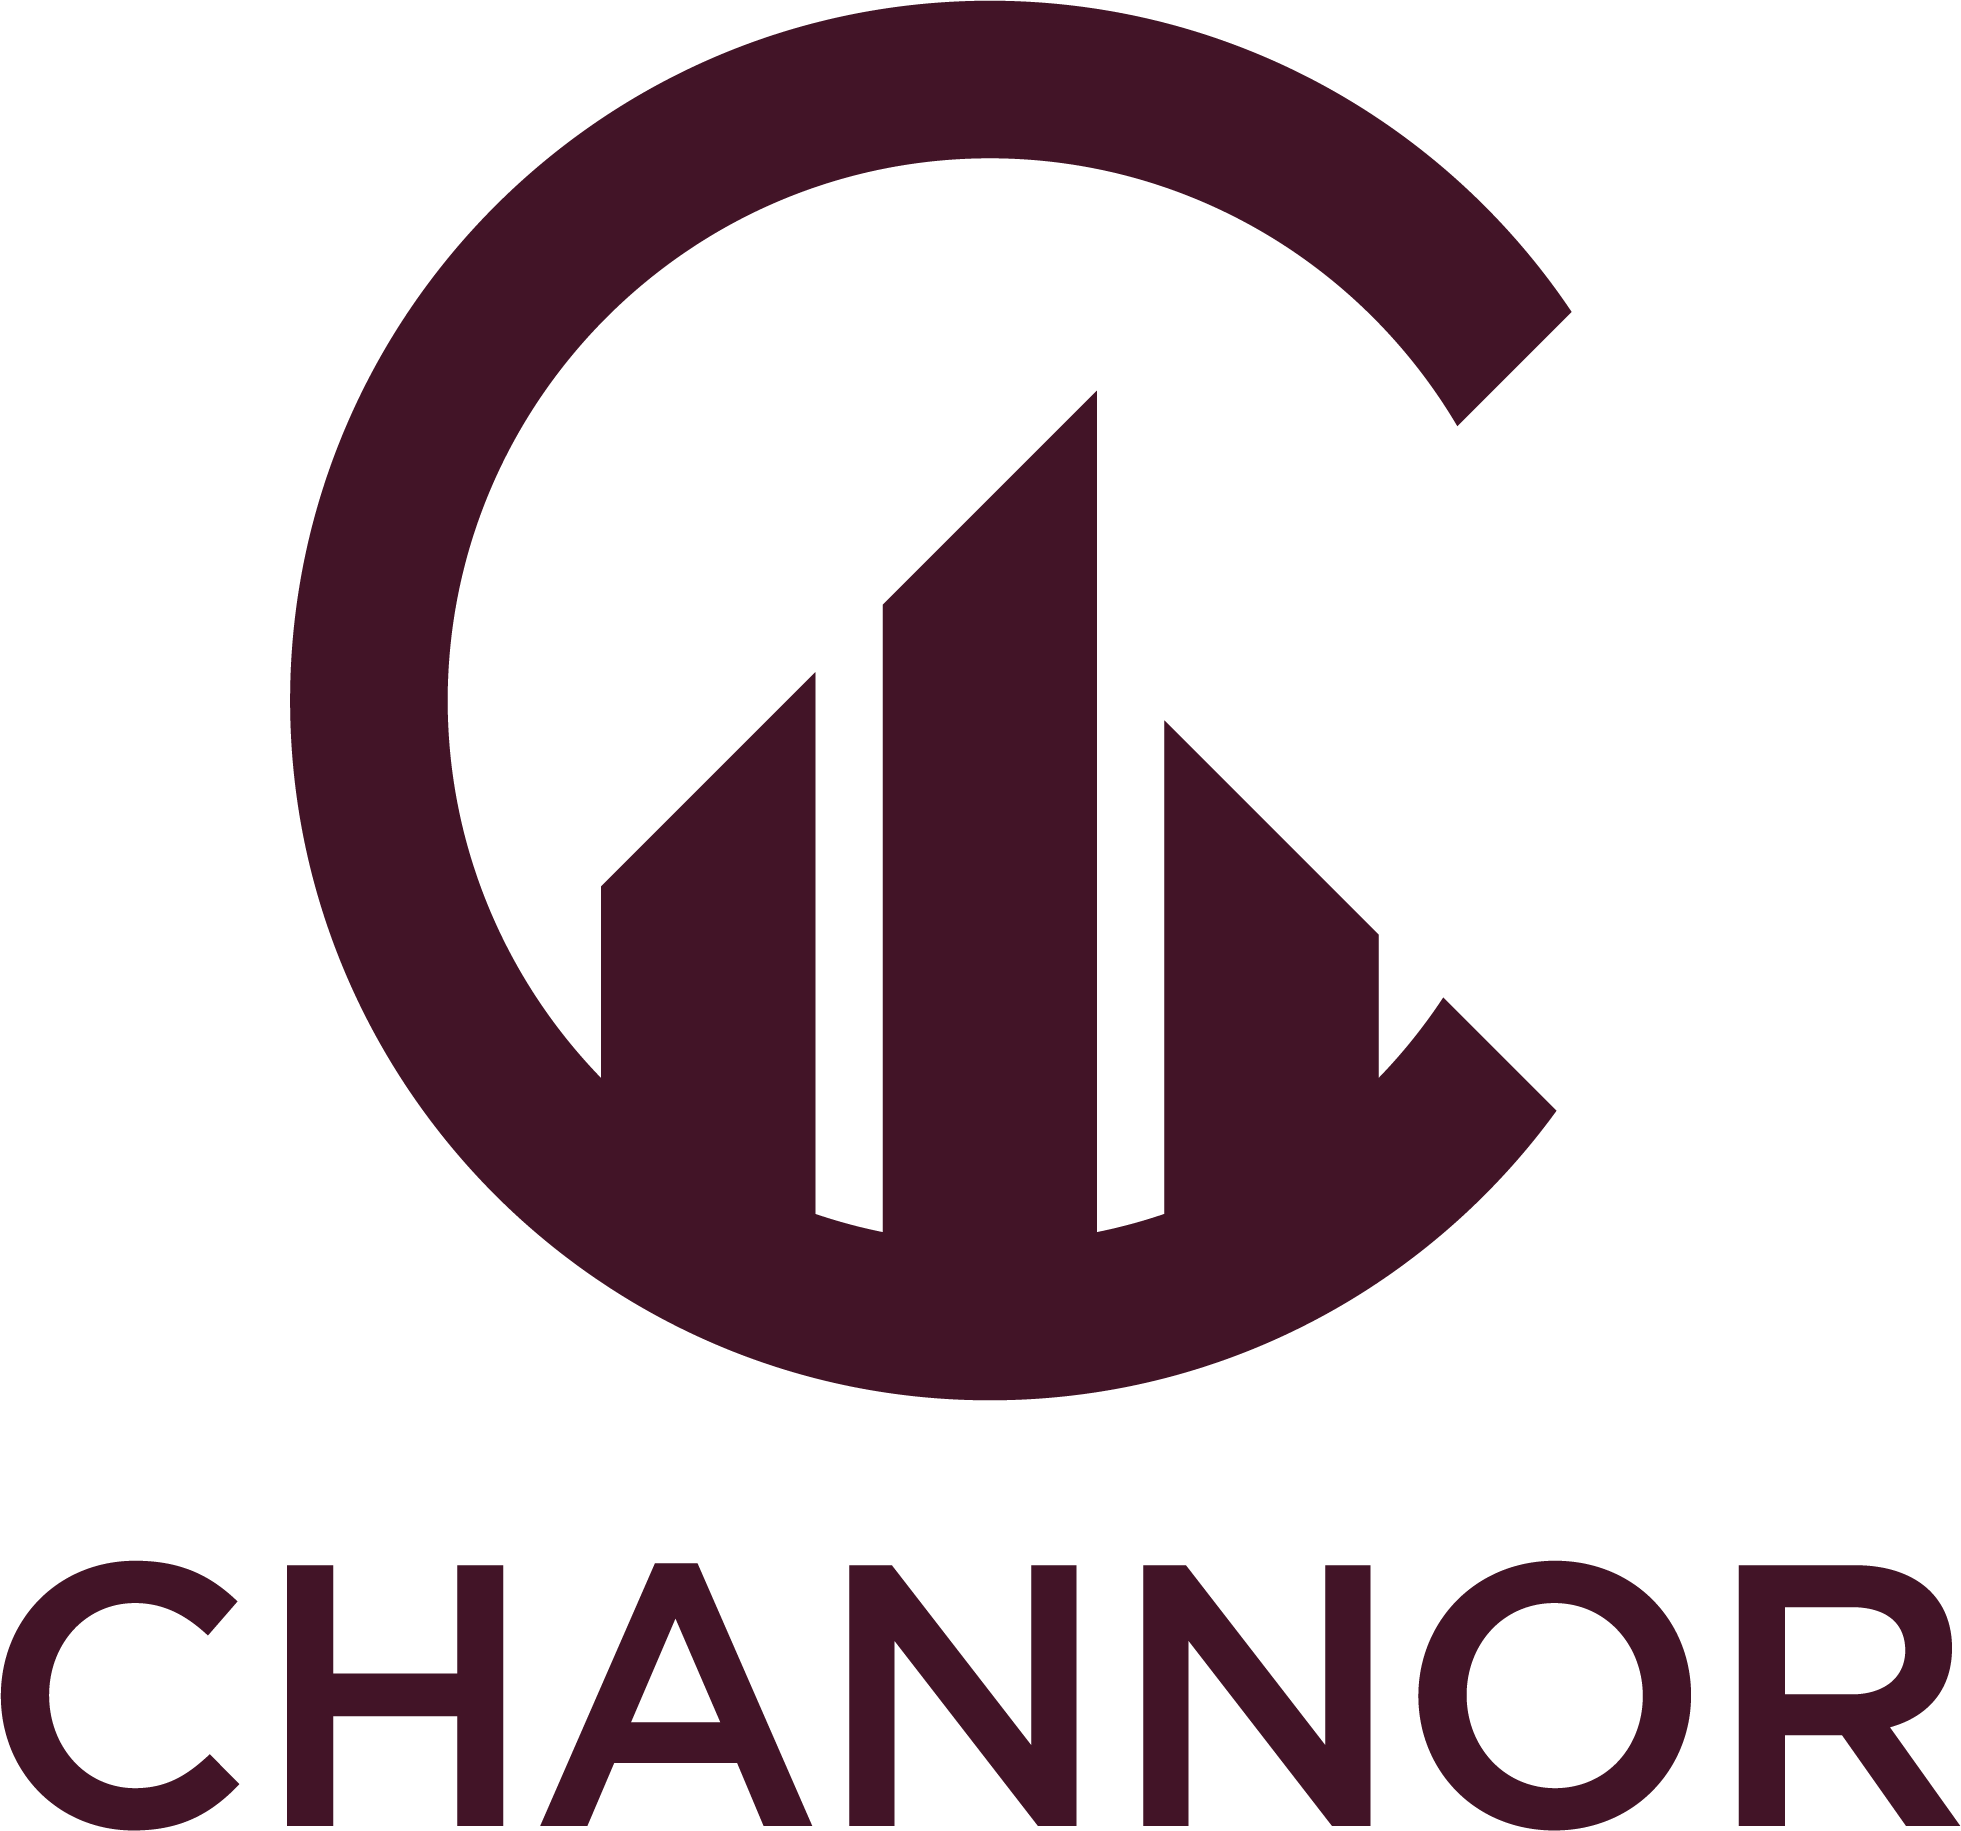 Channor logo.png